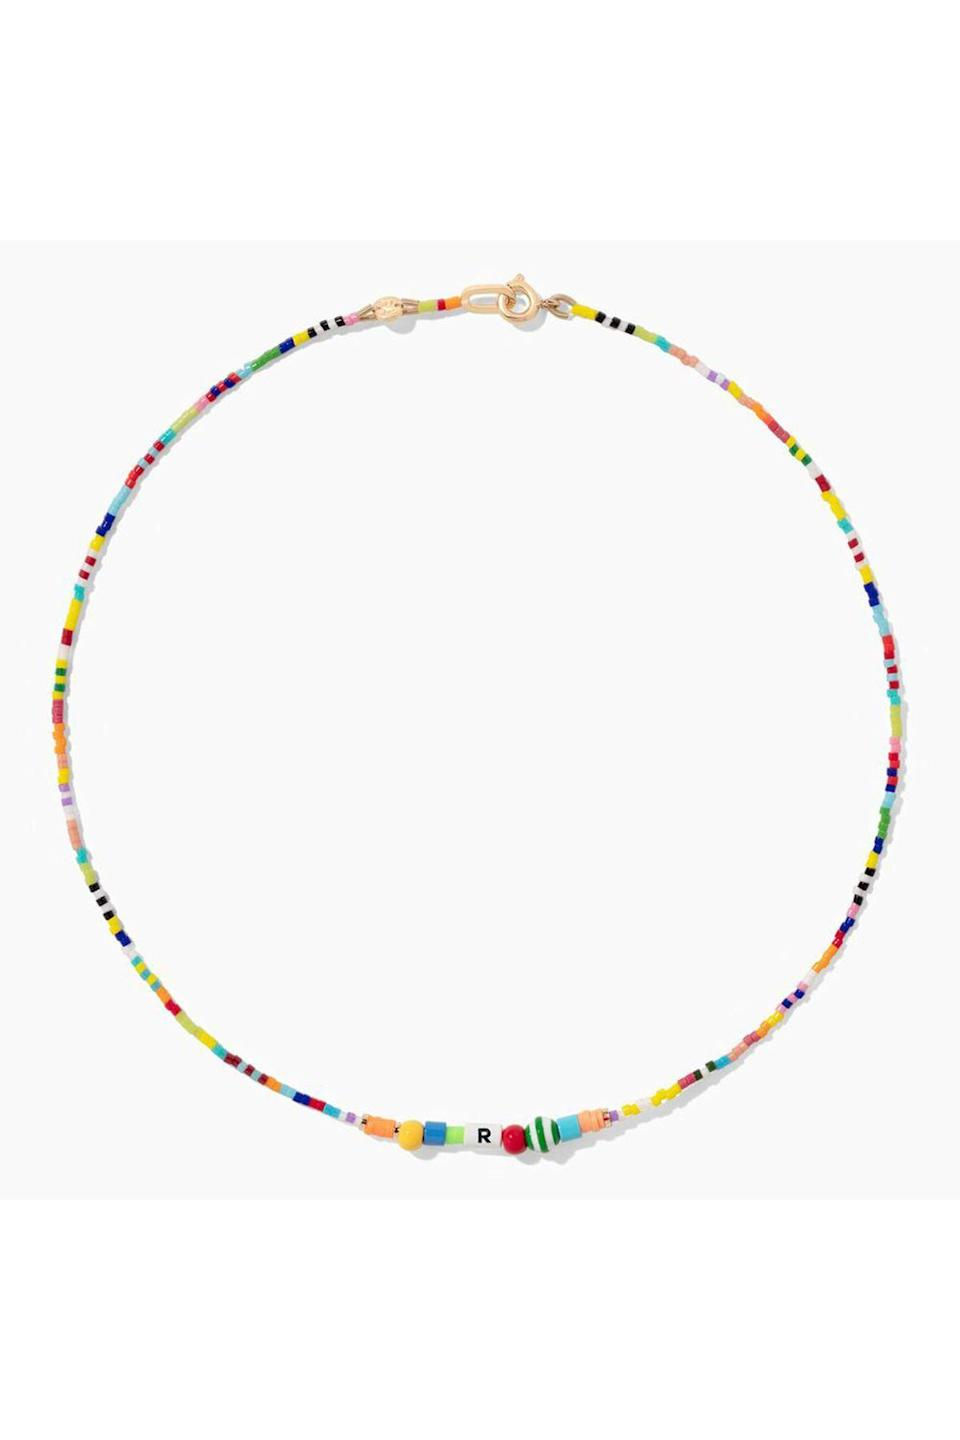 """<p><strong>Roxanne Assoulin</strong></p><p>roxanneassoulin.com</p><p><strong>$75.00</strong></p><p><a href=""""https://roxanneassoulin.com/collections/necklaces/products/abc-necklace"""" rel=""""nofollow noopener"""" target=""""_blank"""" data-ylk=""""slk:Shop Now"""" class=""""link rapid-noclick-resp"""">Shop Now</a></p><p>Roxanne Assoulin is known for her colorful, lighthearted designs, and this is no exception. This customizable necklace is sure to be a staple in your jewelry box. </p>"""